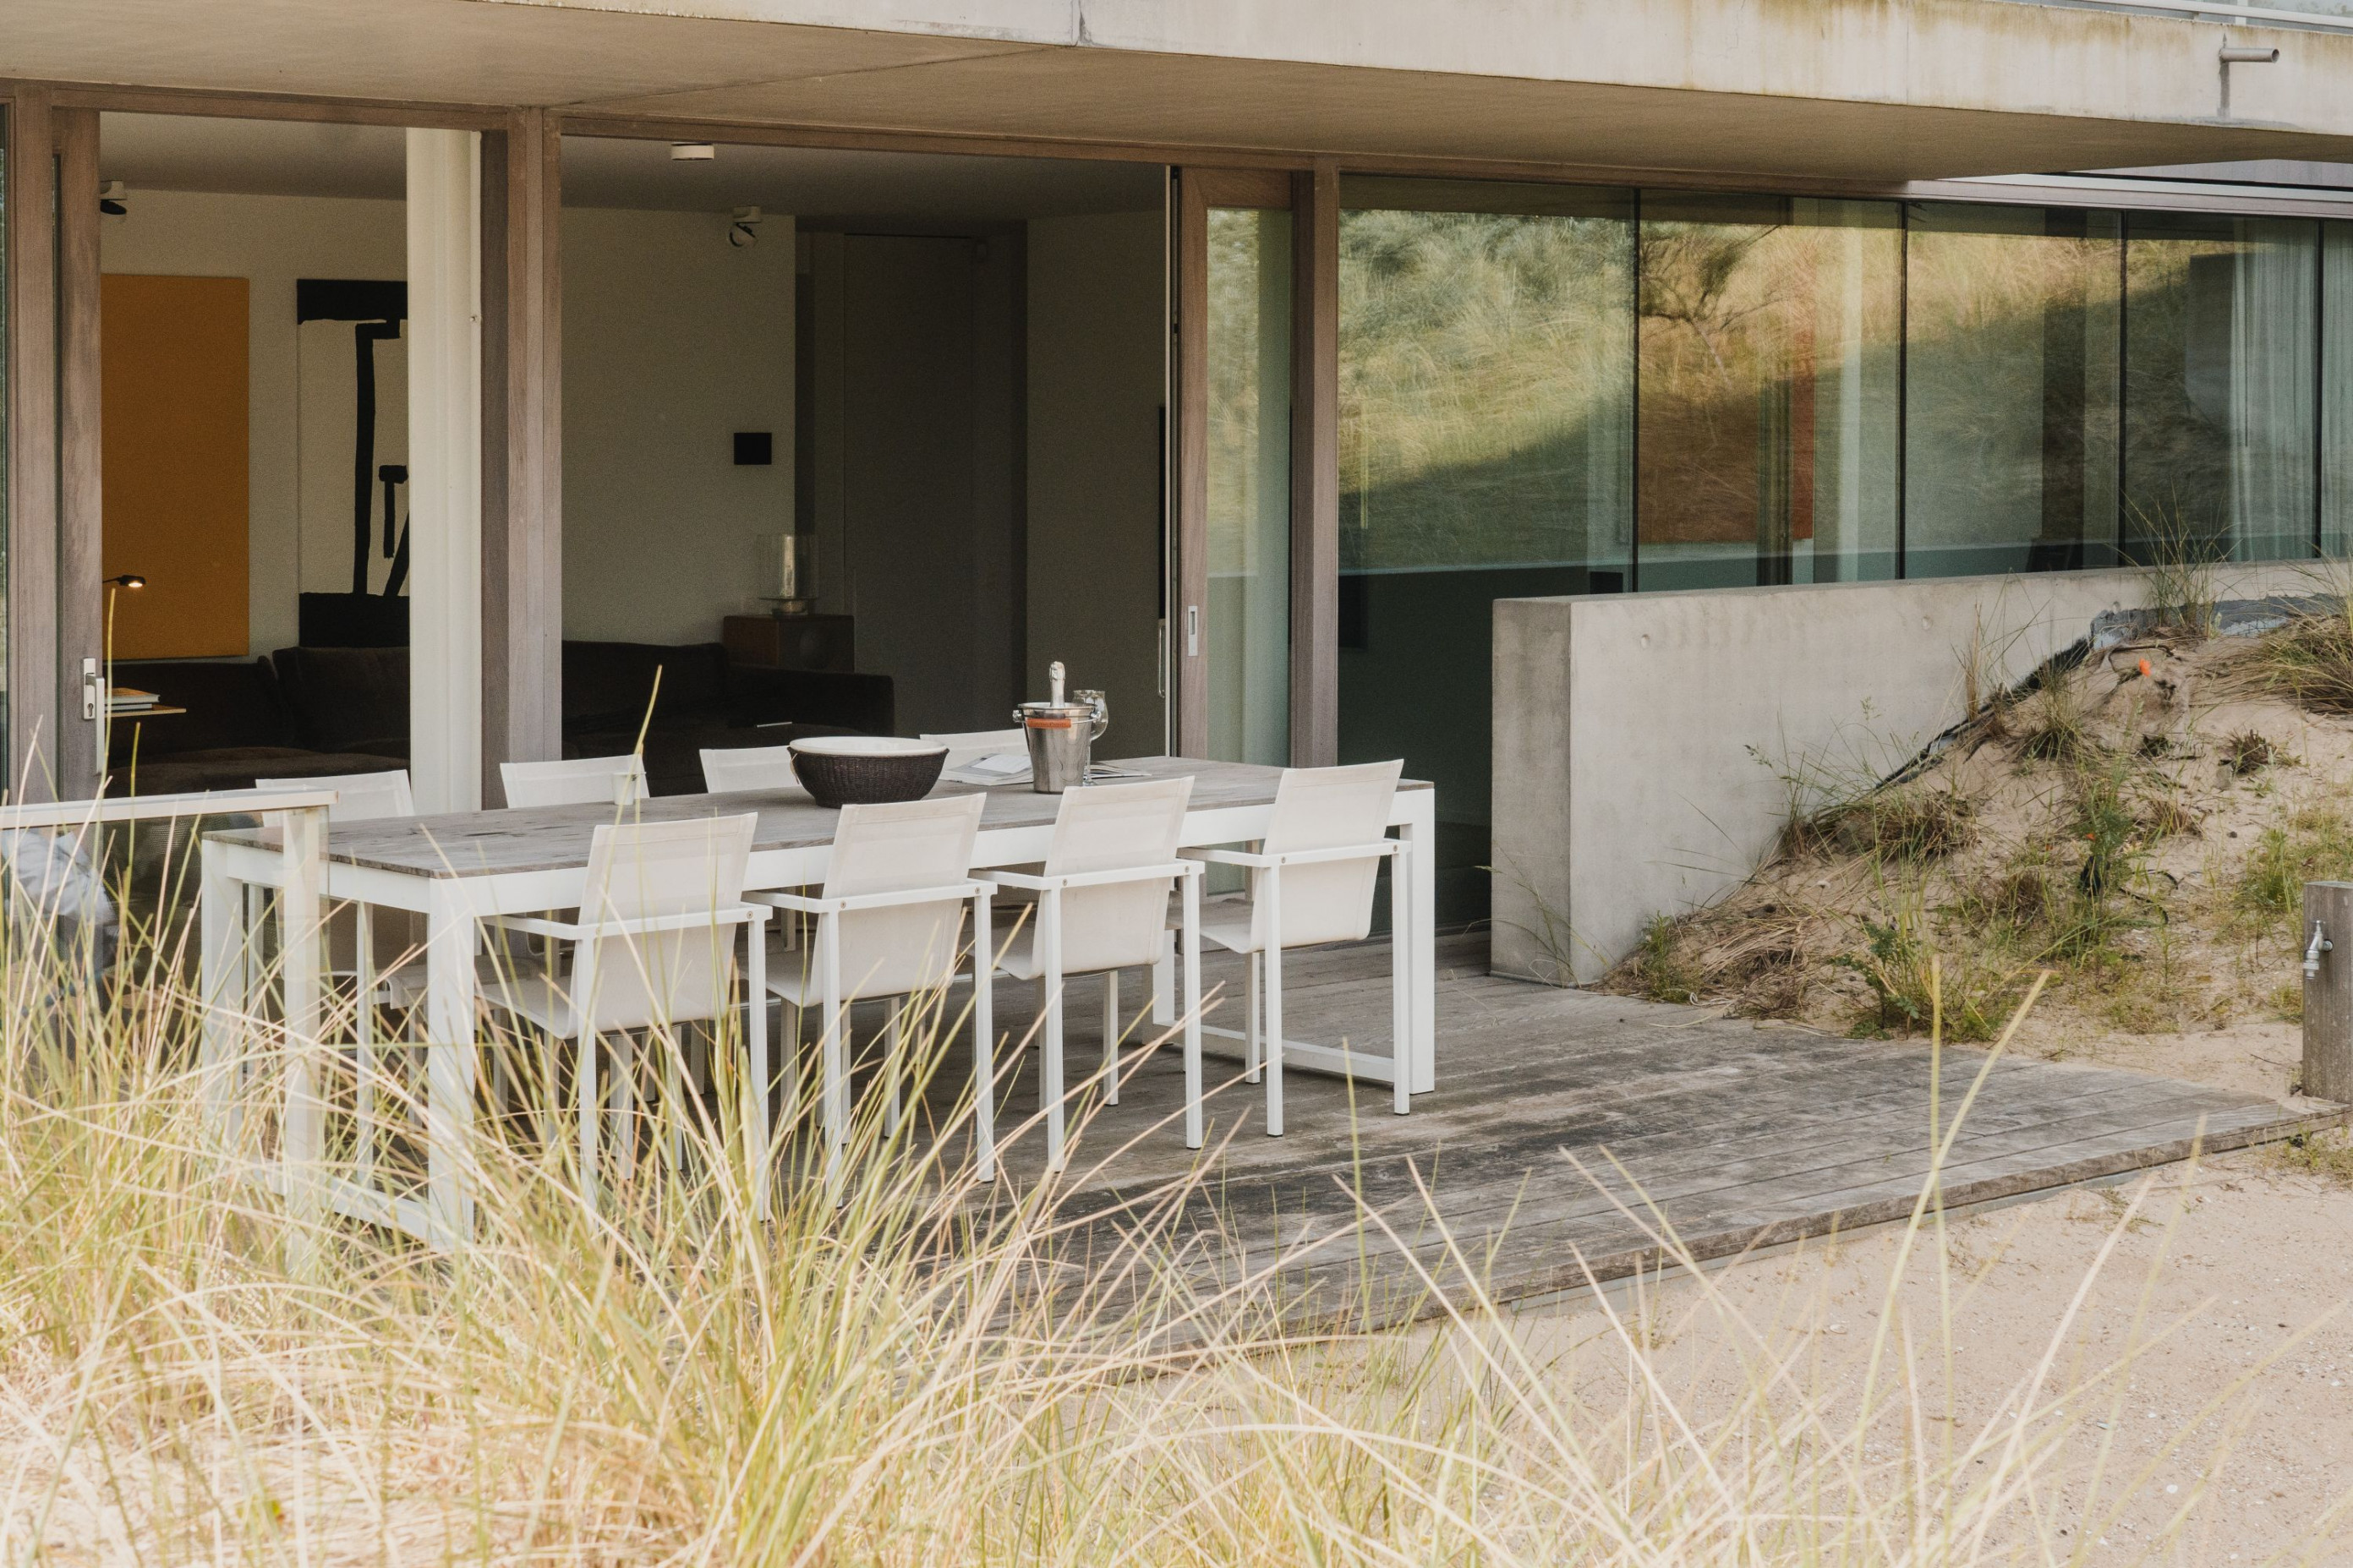 Duinappartement - Arne Jacobsen - Pic by Dayo Clinckspoor26